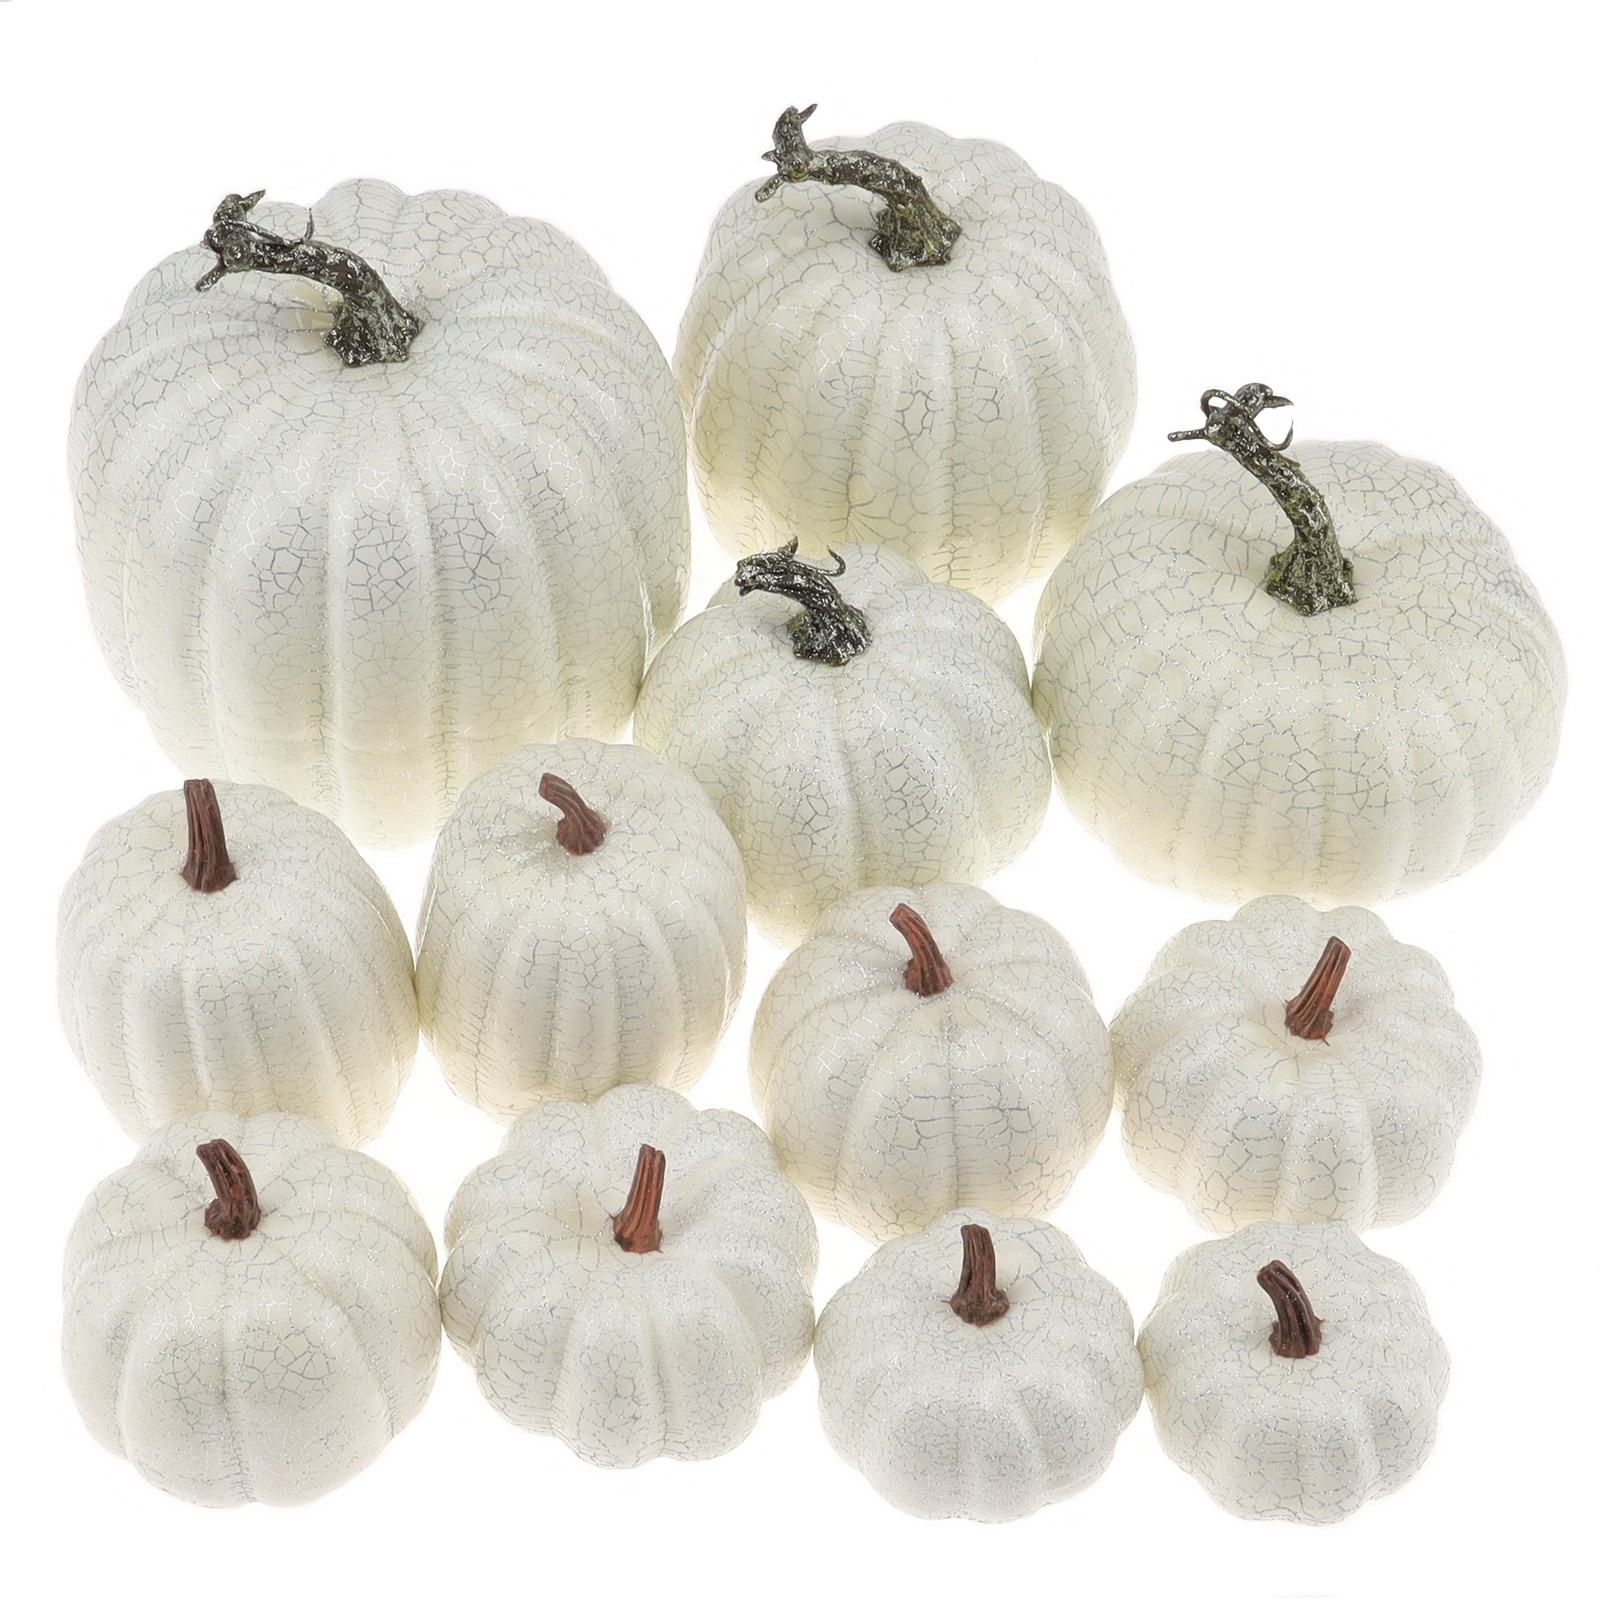 Gresorth Artificial White Pumpkins Wholesale Fake Vegetable Fall Autumn MINI Pumpkin Set Halloween Christmas Holiday Decoration